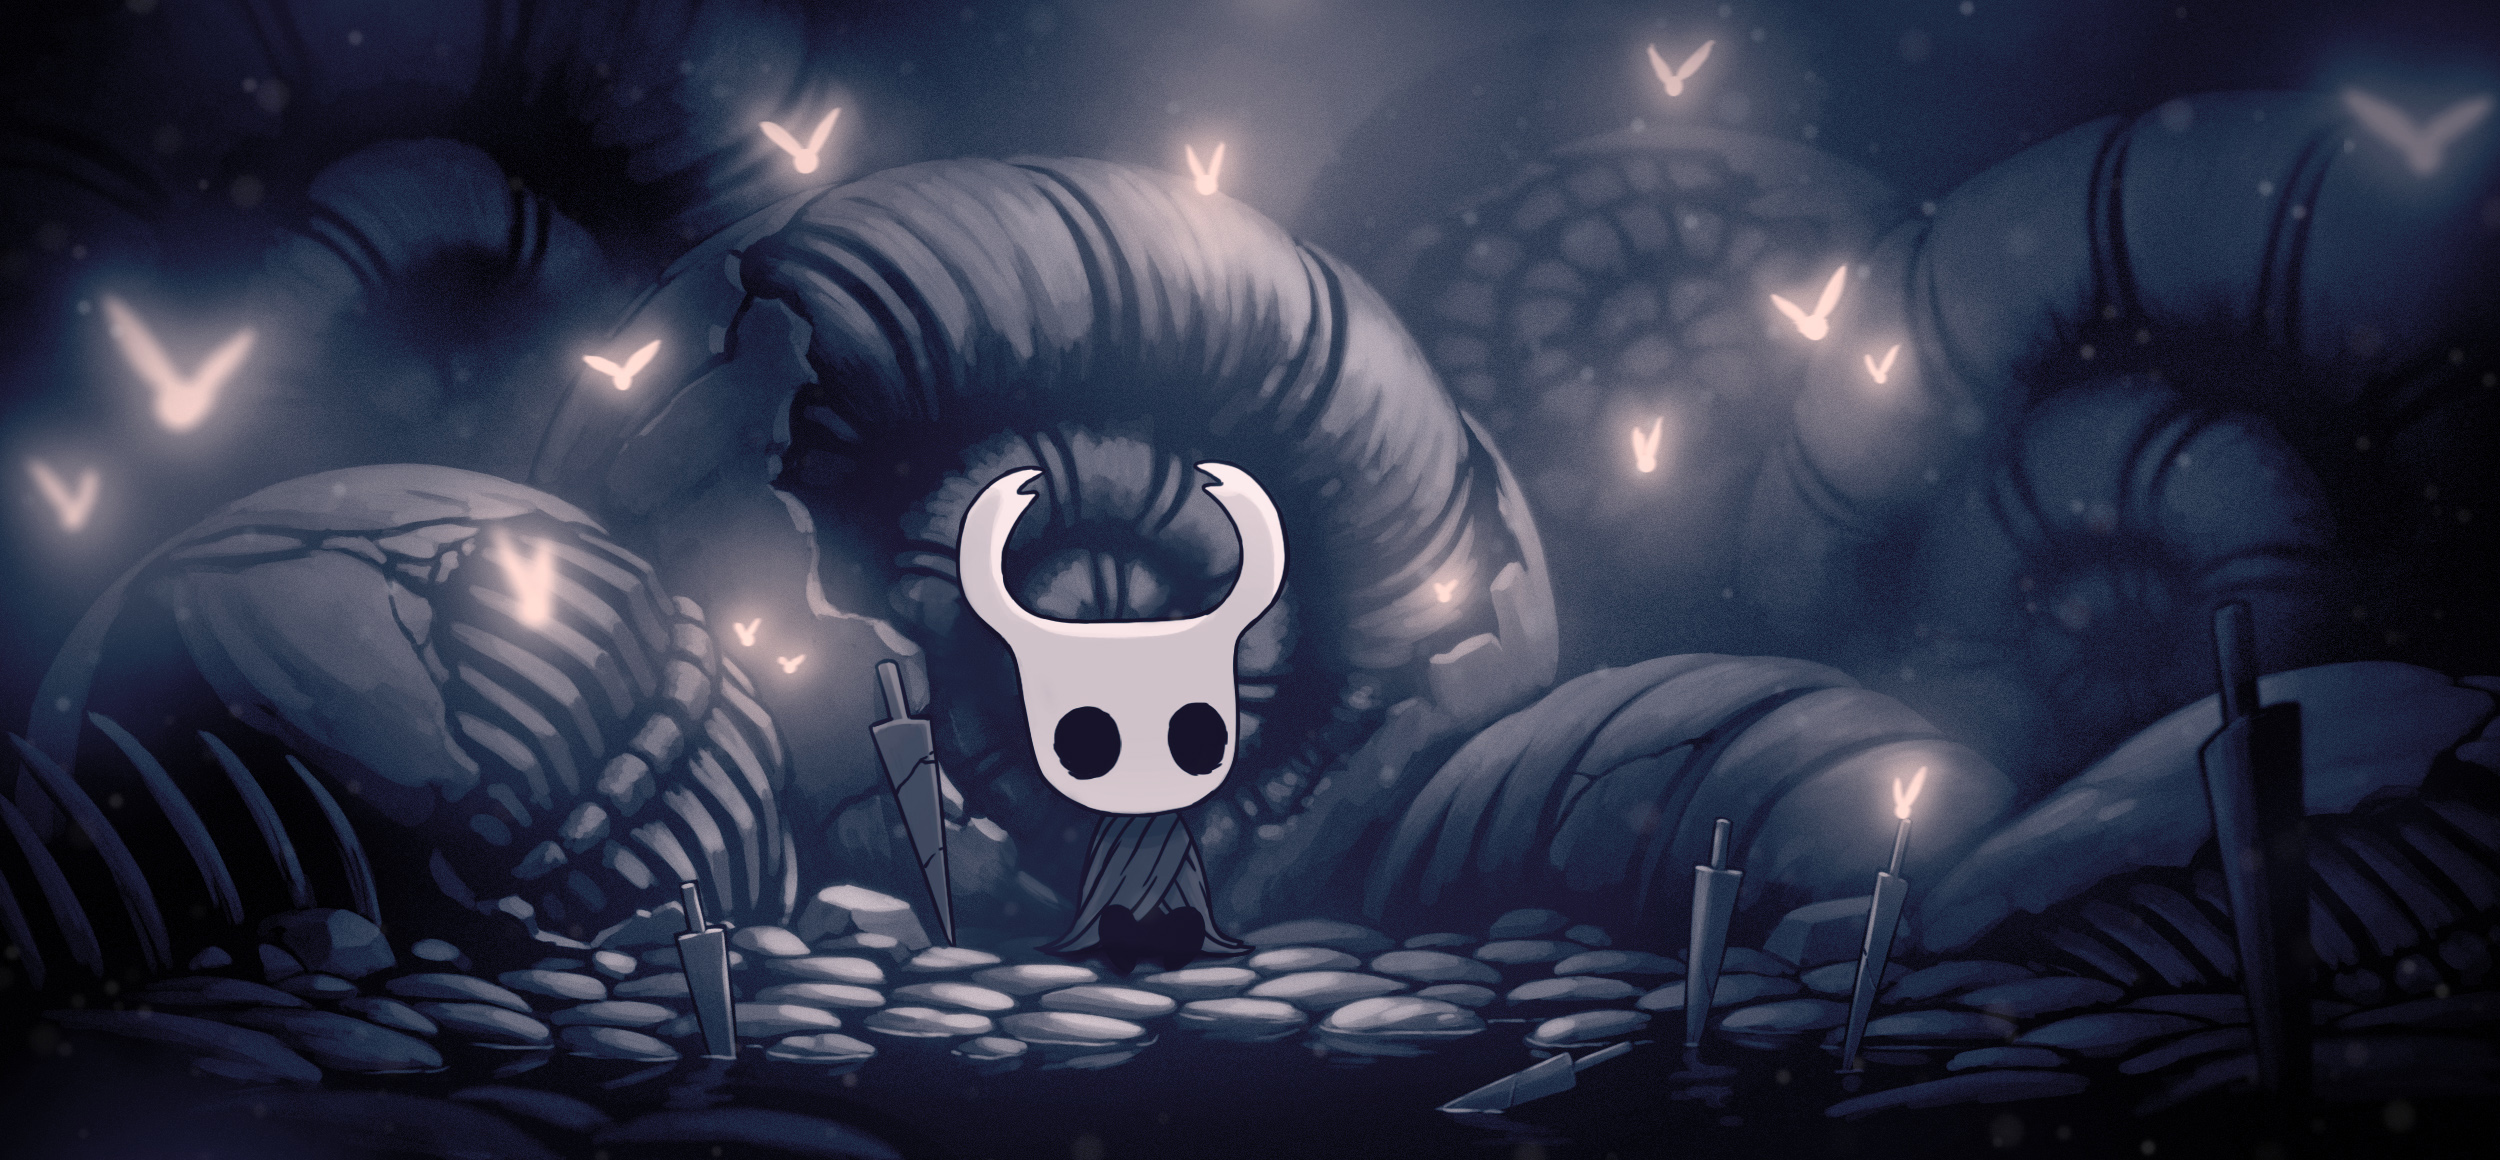 Hollow Knight is about overcoming great odds and trying to feel significant.